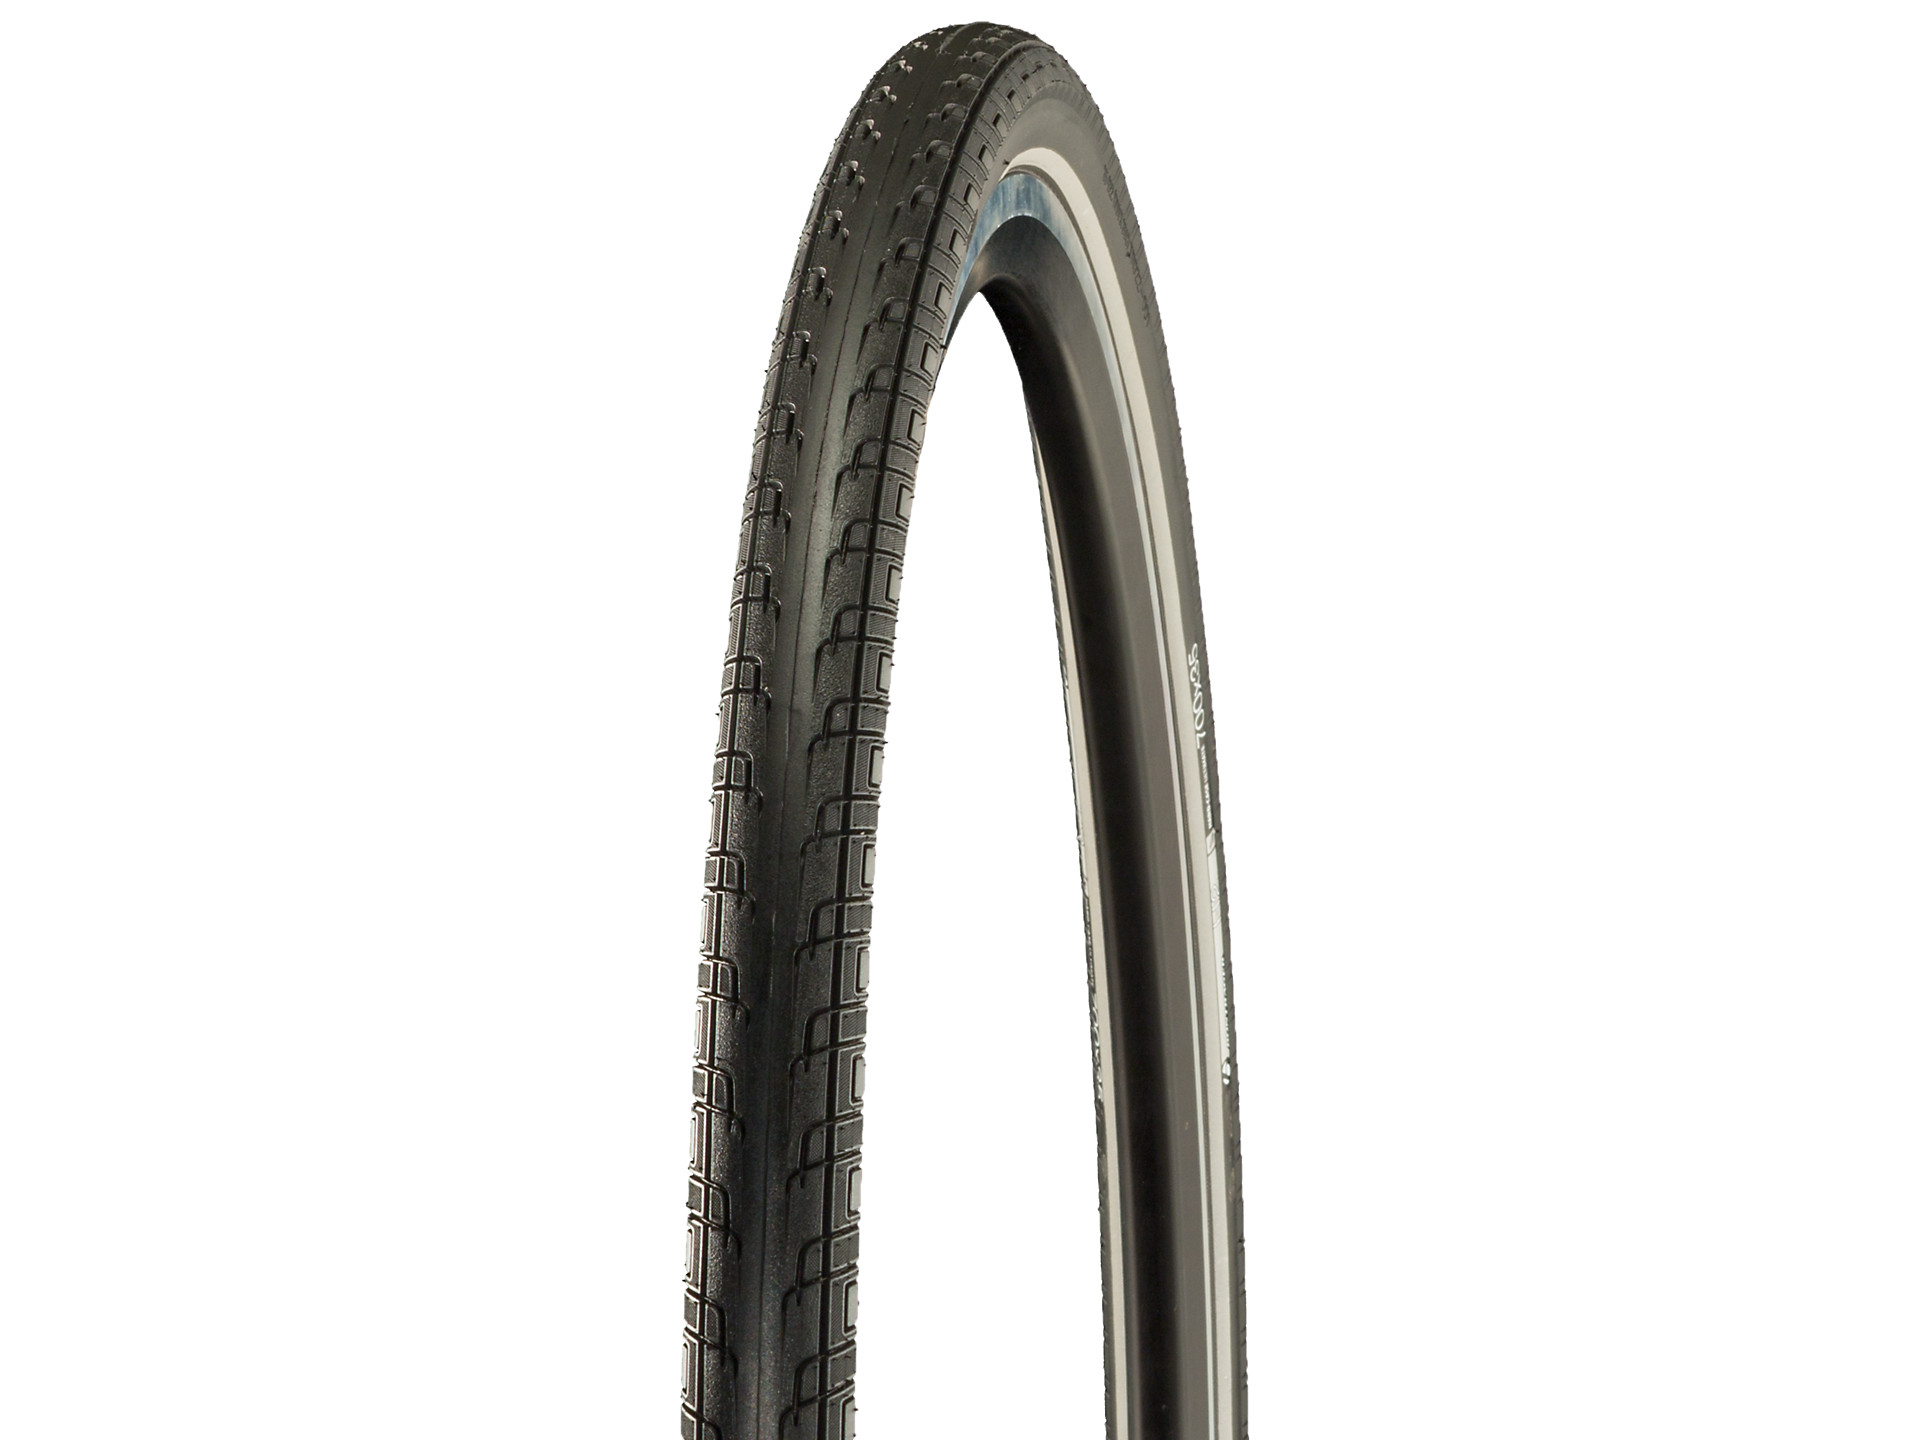 Bike Tires New! High quality bicycle Tire Bontrager H2 Hybrid Tires 700x45